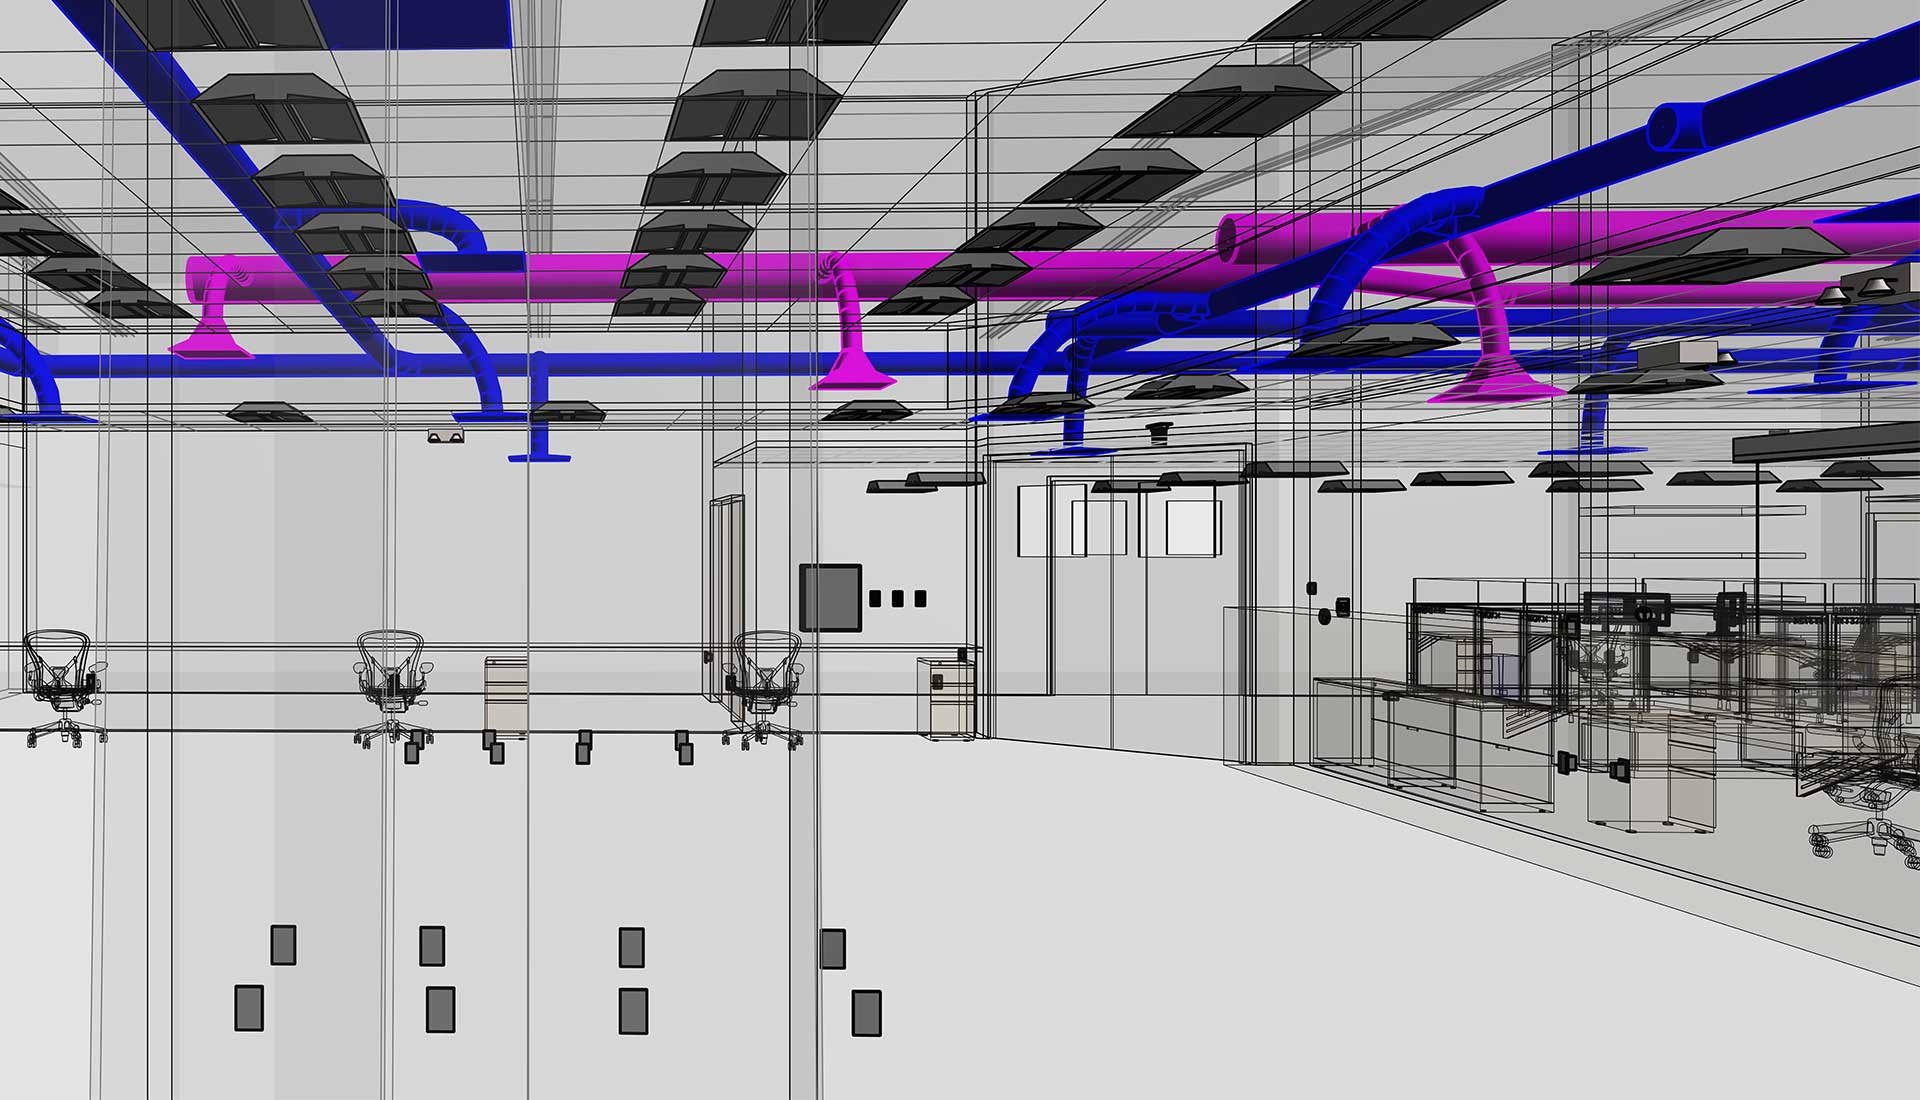 HVAC-Ducting-System-and-Electrical-System-with-Wireframe-Architectural-View